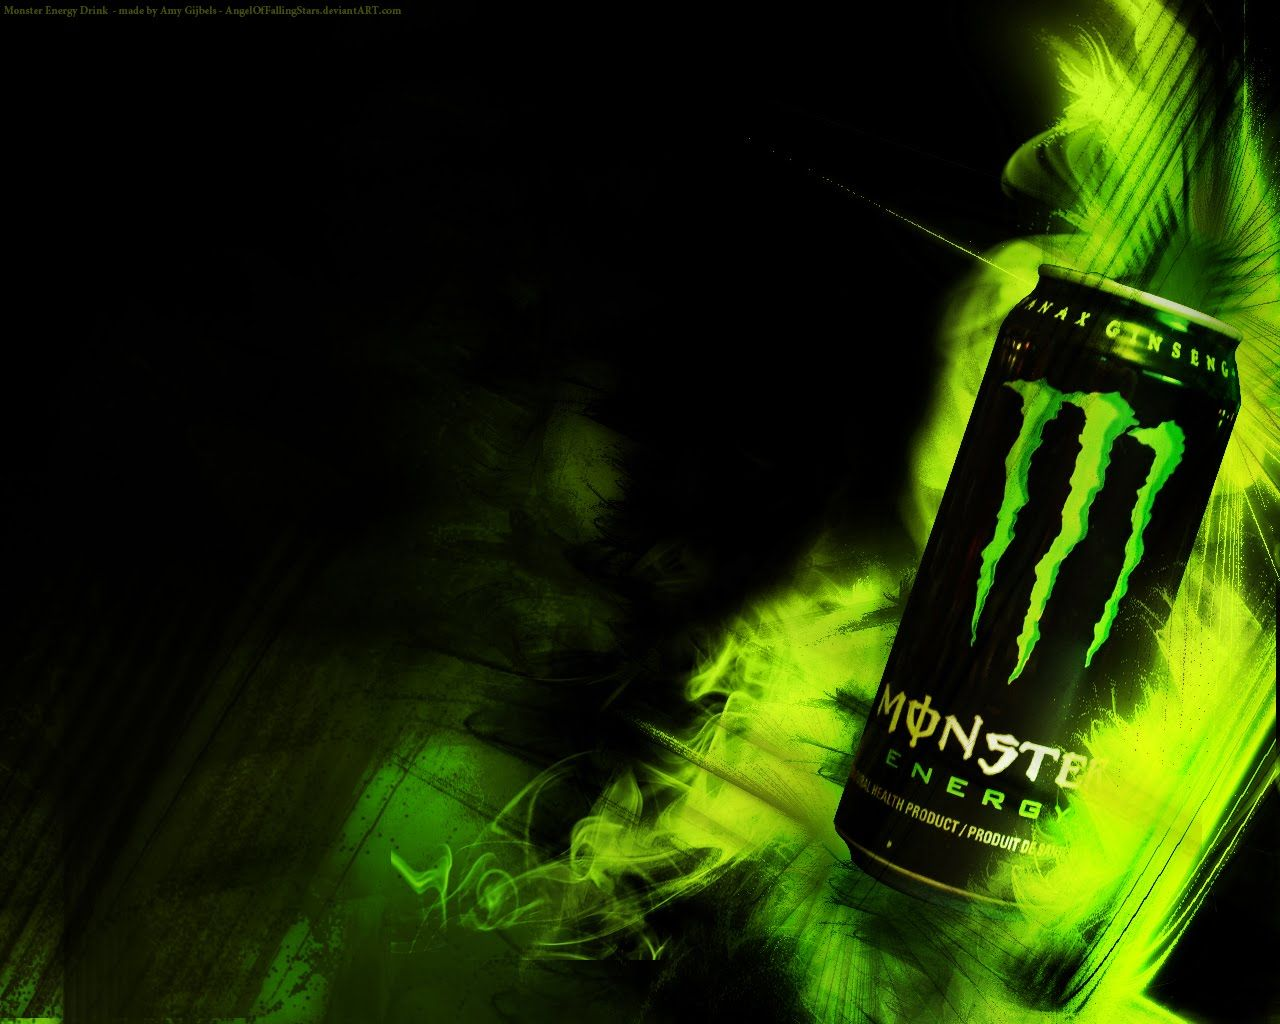 Monster-Collection-For-Free-Download-wallpaper-wpc58010003